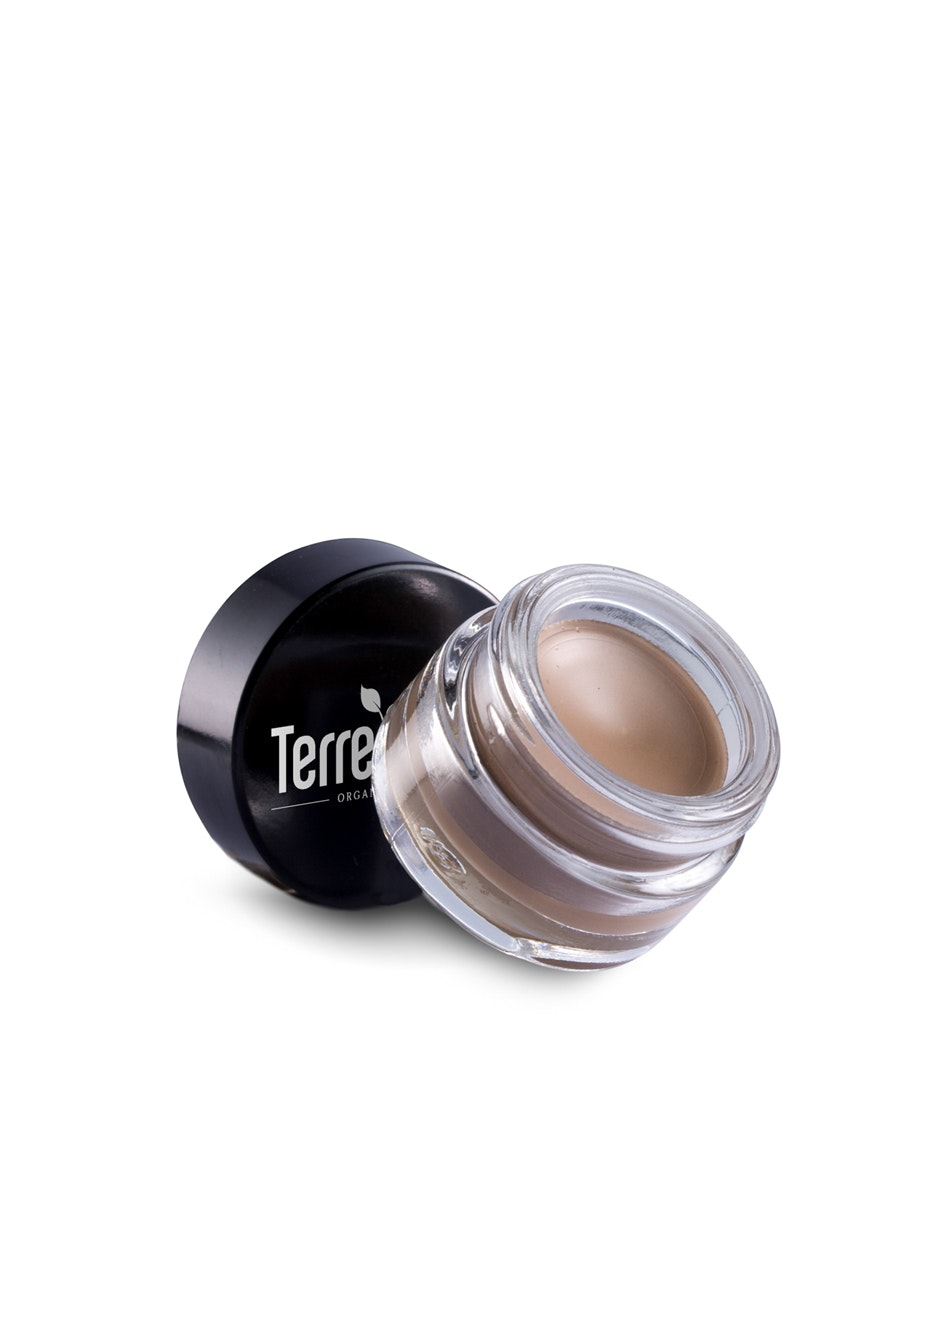 Terre Mere - Indelible Gel Brow - Blonde